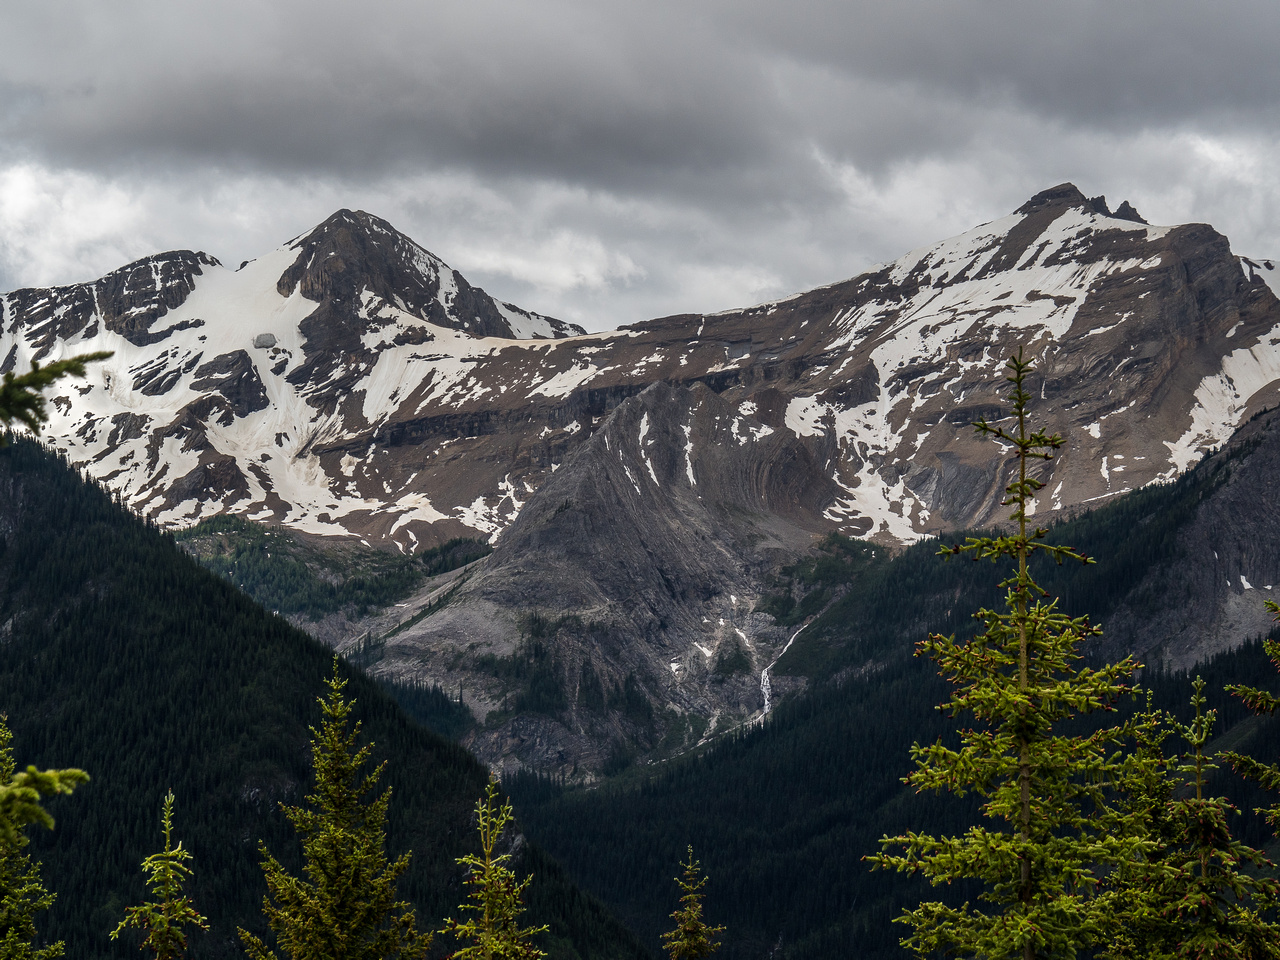 Nestor Peak (L) and Simpson Peak (R) lie many kilometers and many hundreds of meters of height loss / gains across the Simpson River Valley.